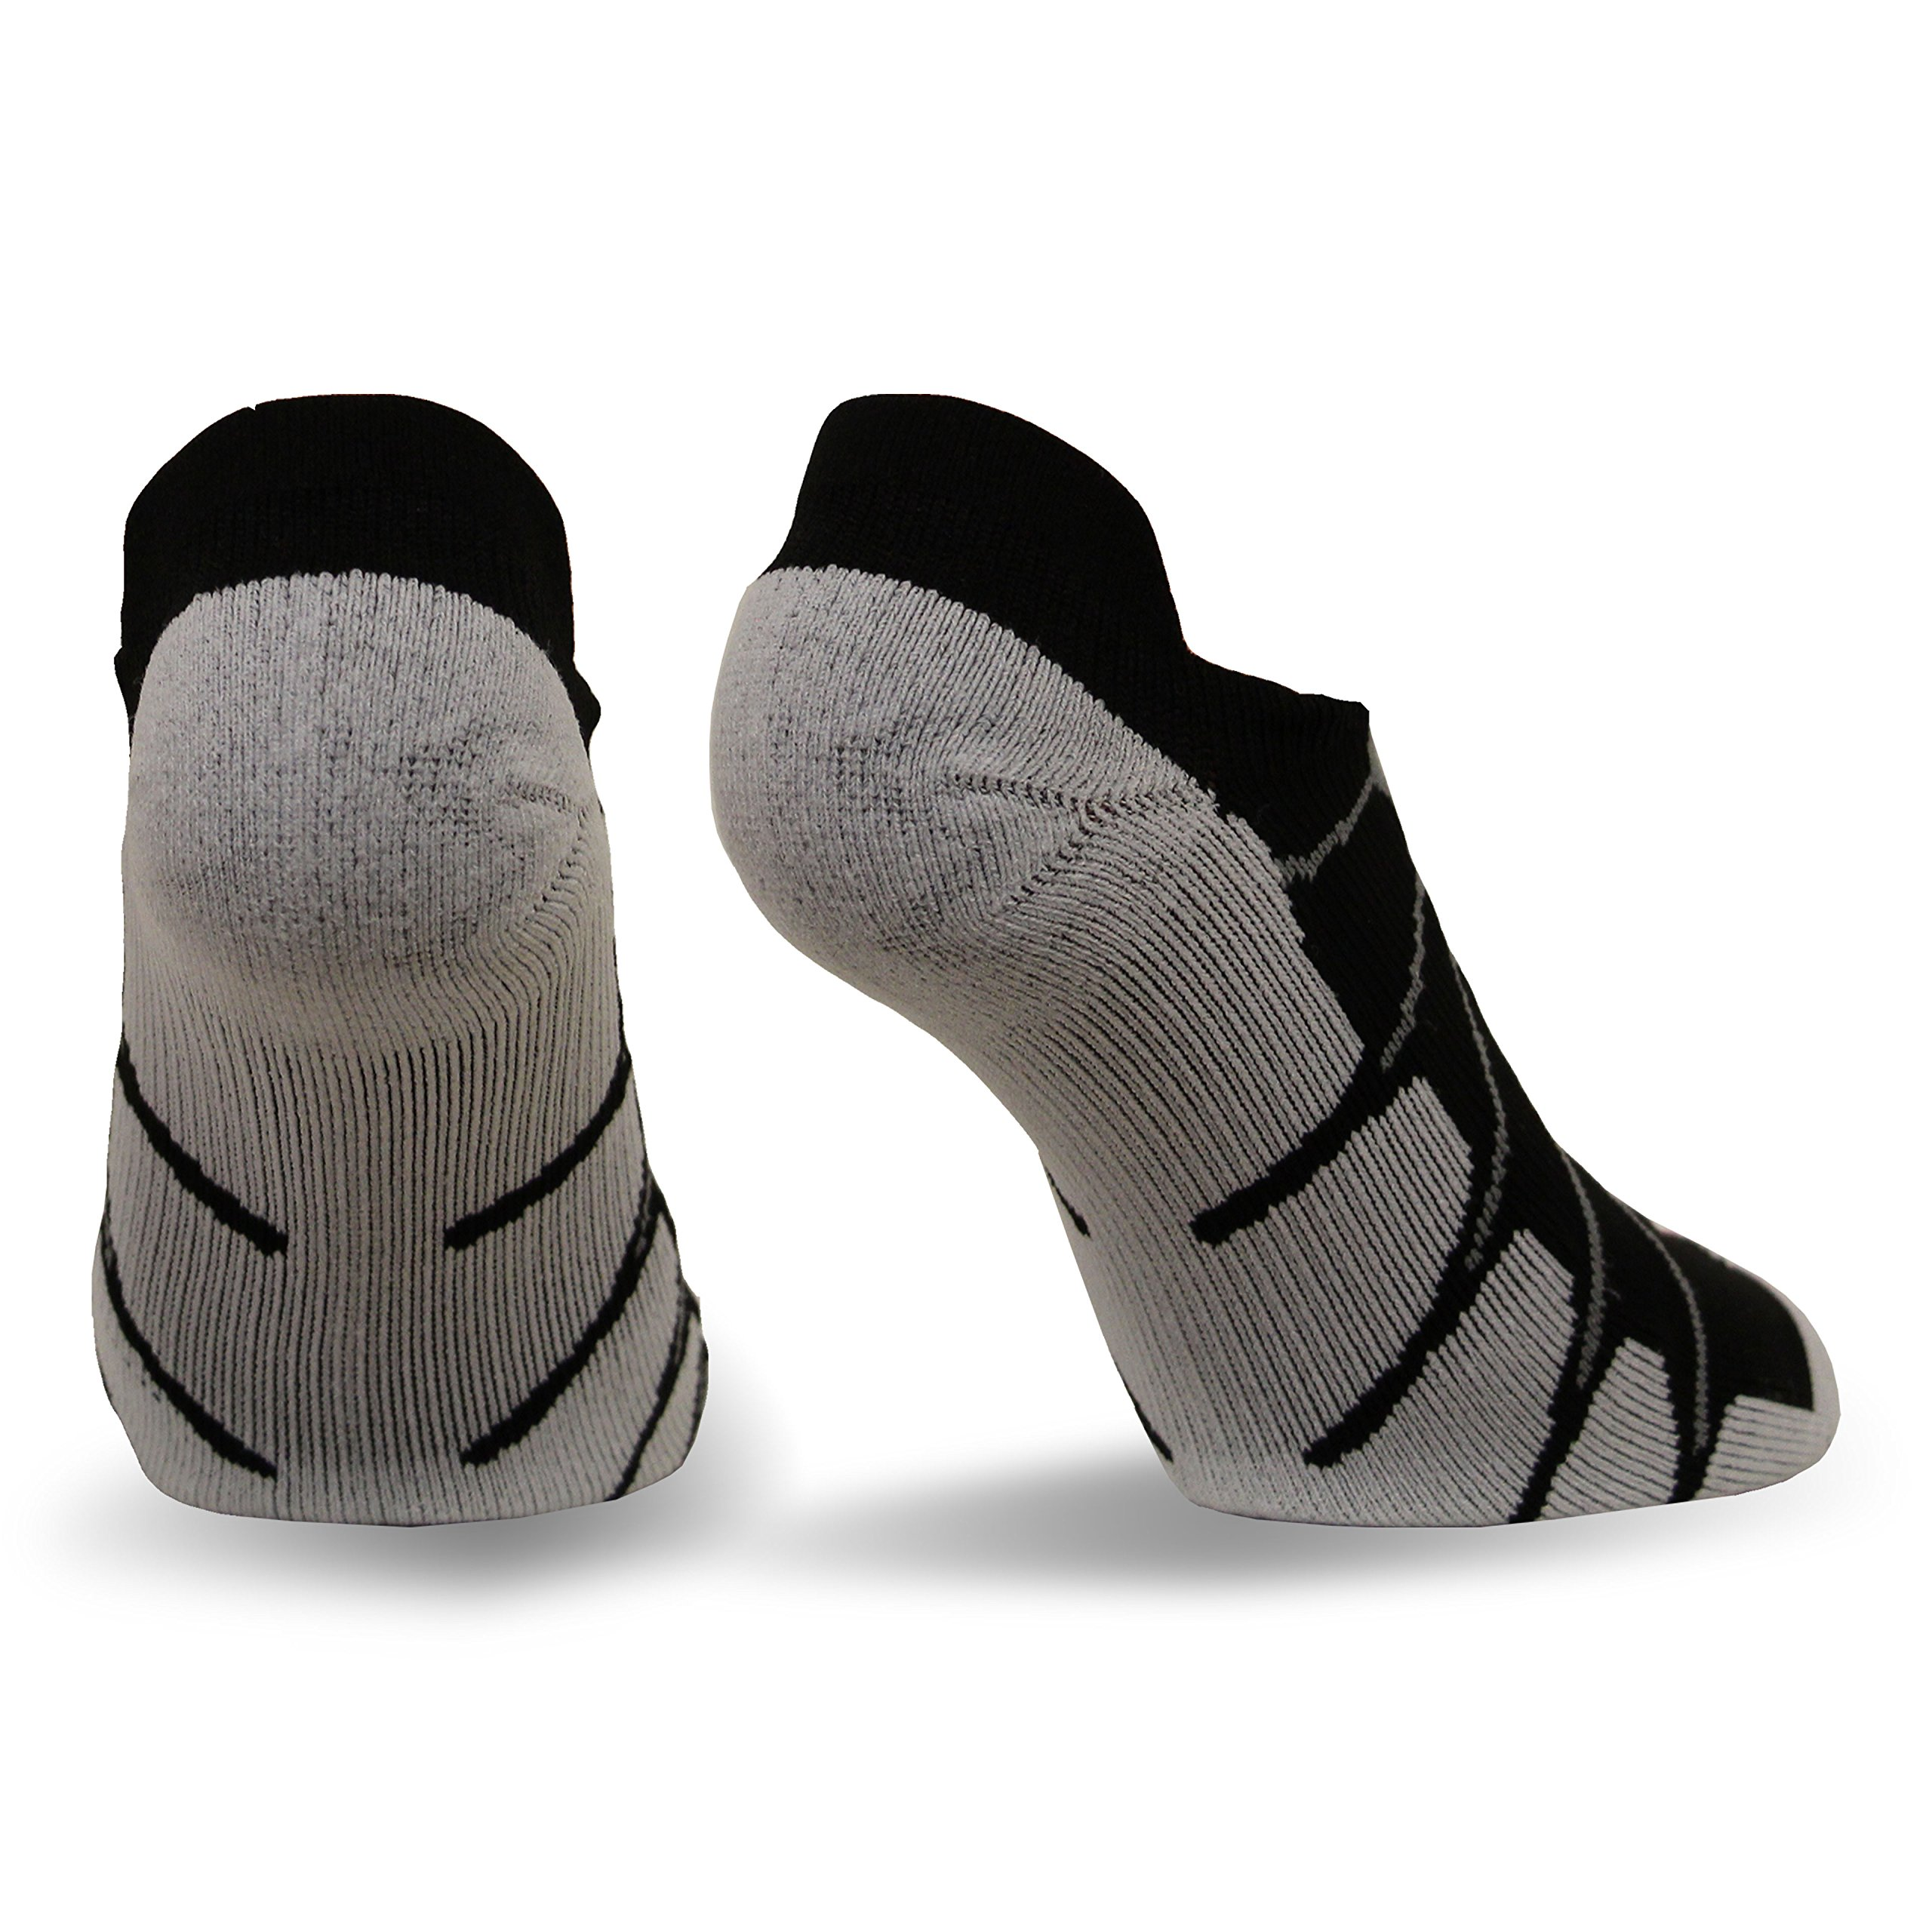 Sox Italy, Ghost No Show Silver Drystat Plantar Support Performance Socks - SS6011